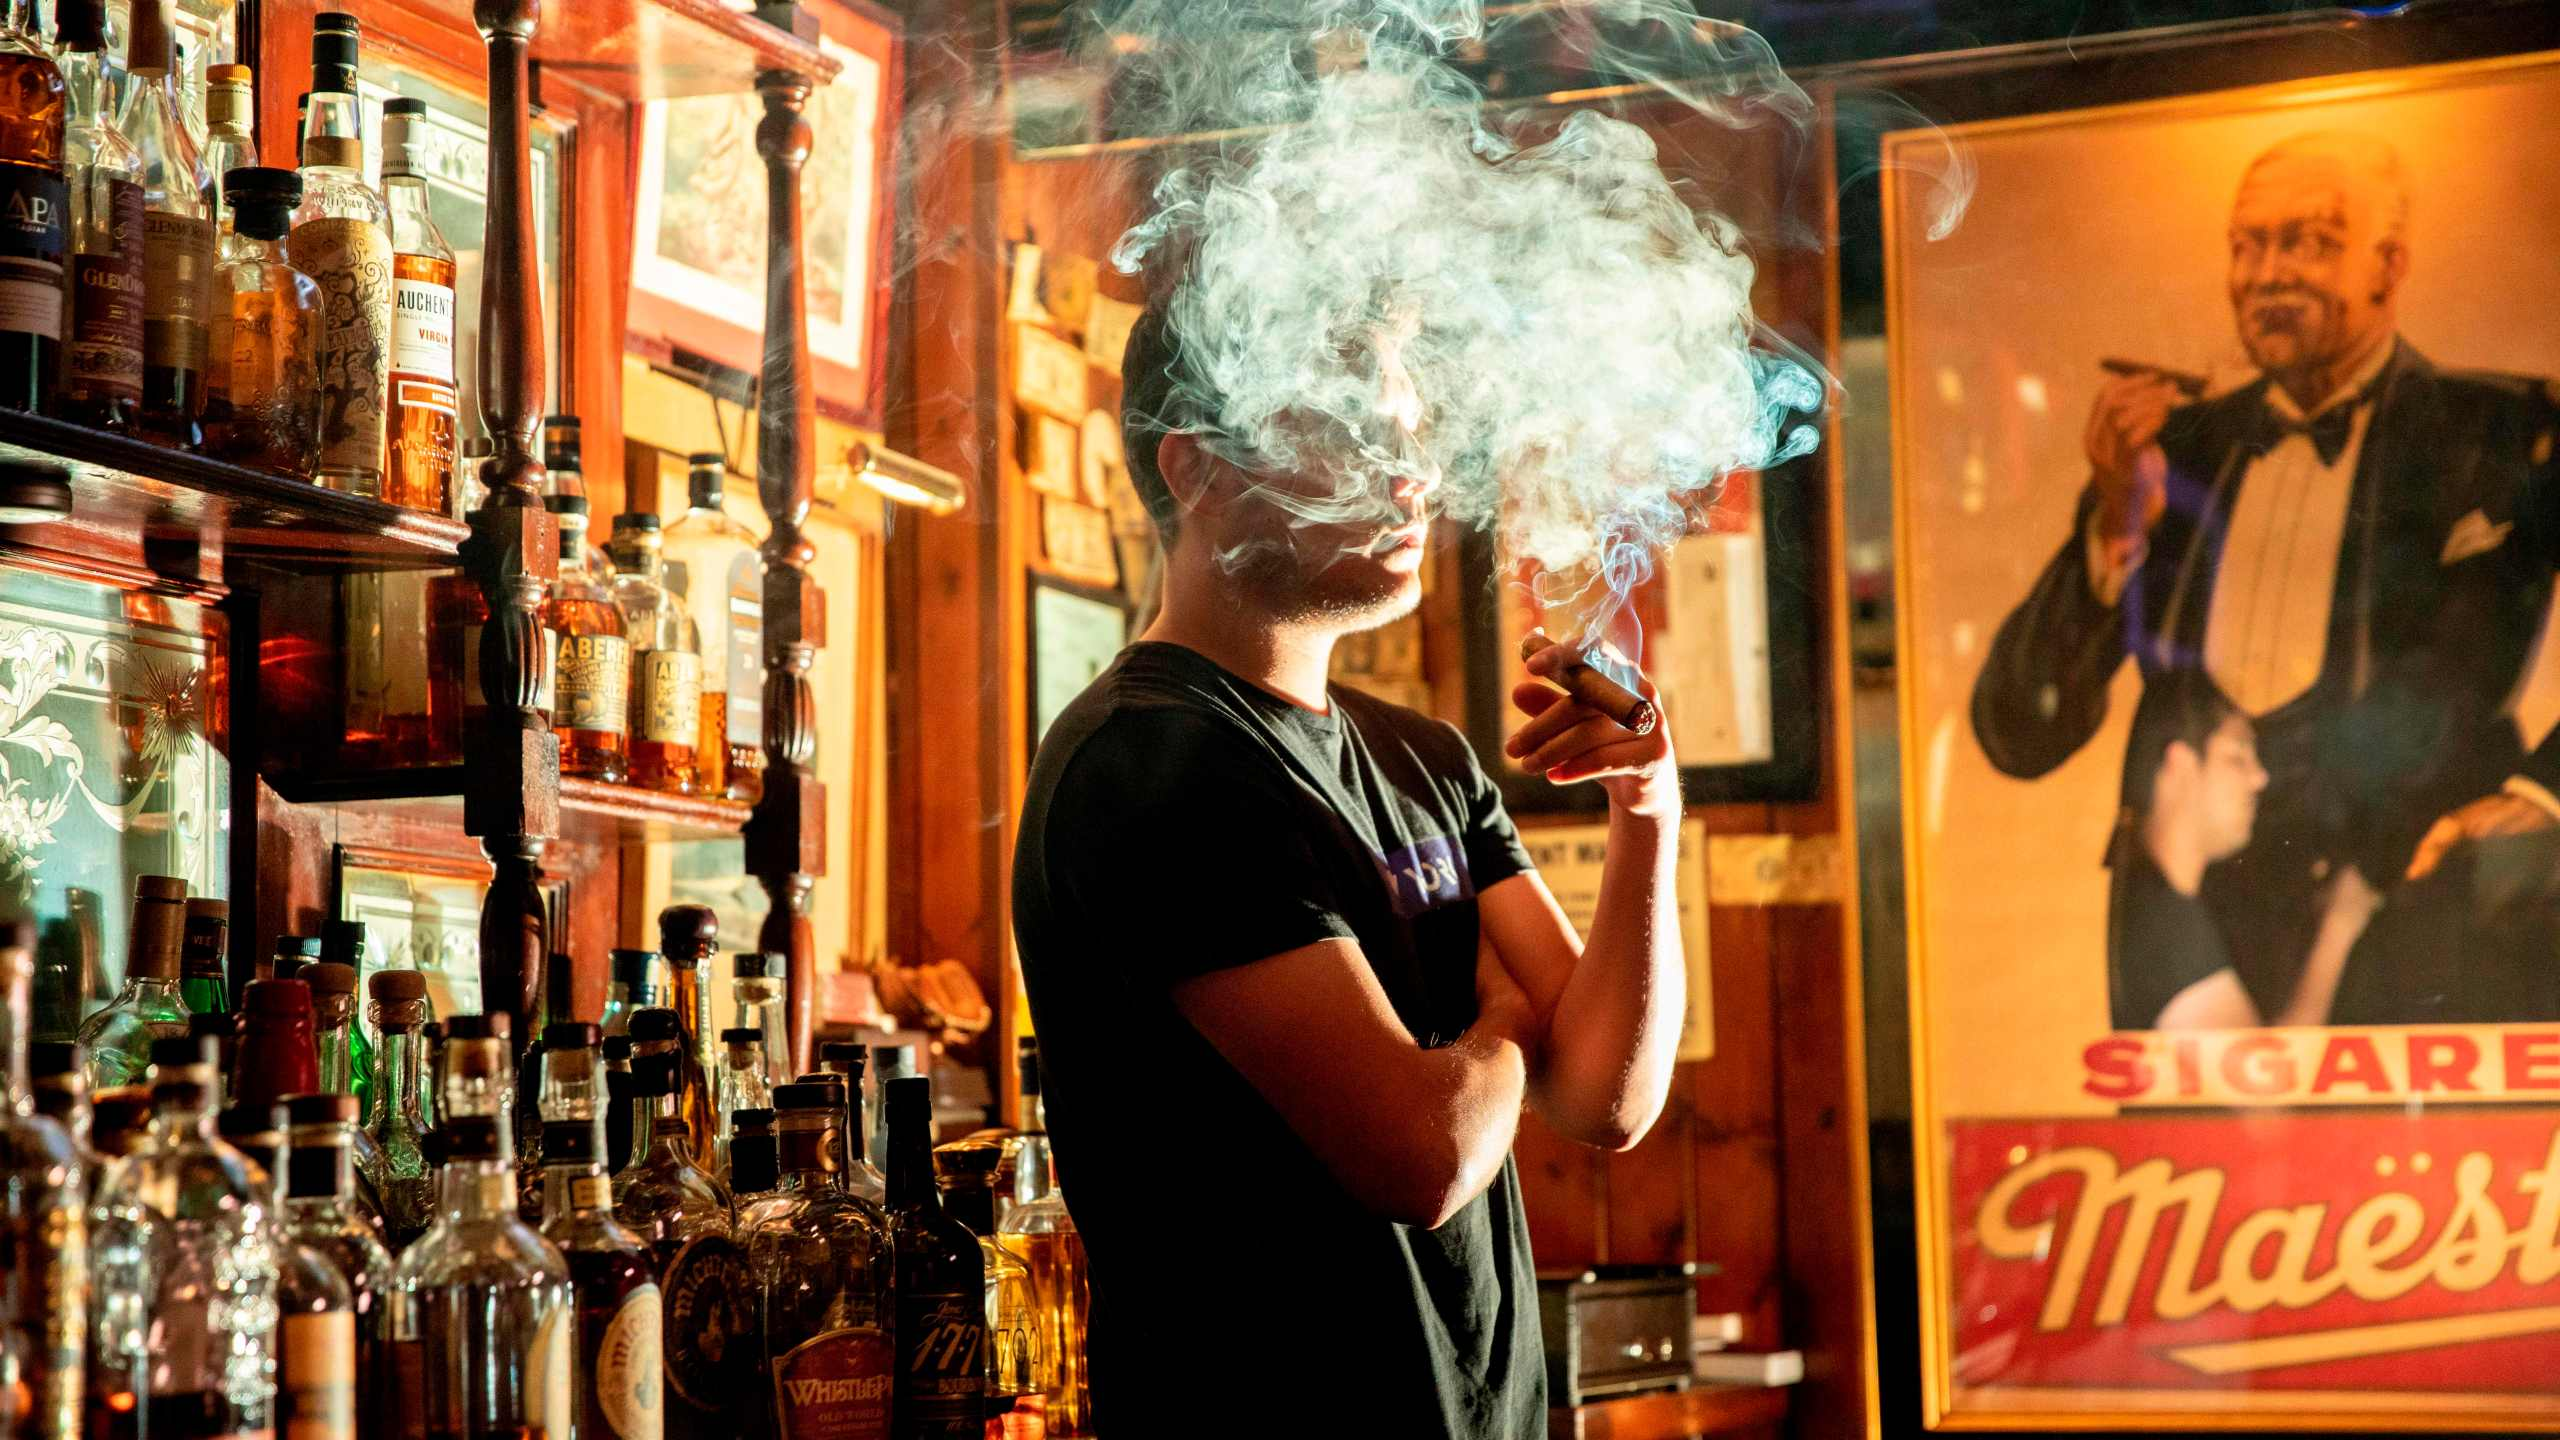 Marc Dominguez, bartender at Buena Vista Cigar Club, smokes a cigar in the Beverly Hills lounge on May 21, 2019. (Credit: Kyle Grillot / AFP / Getty Images)